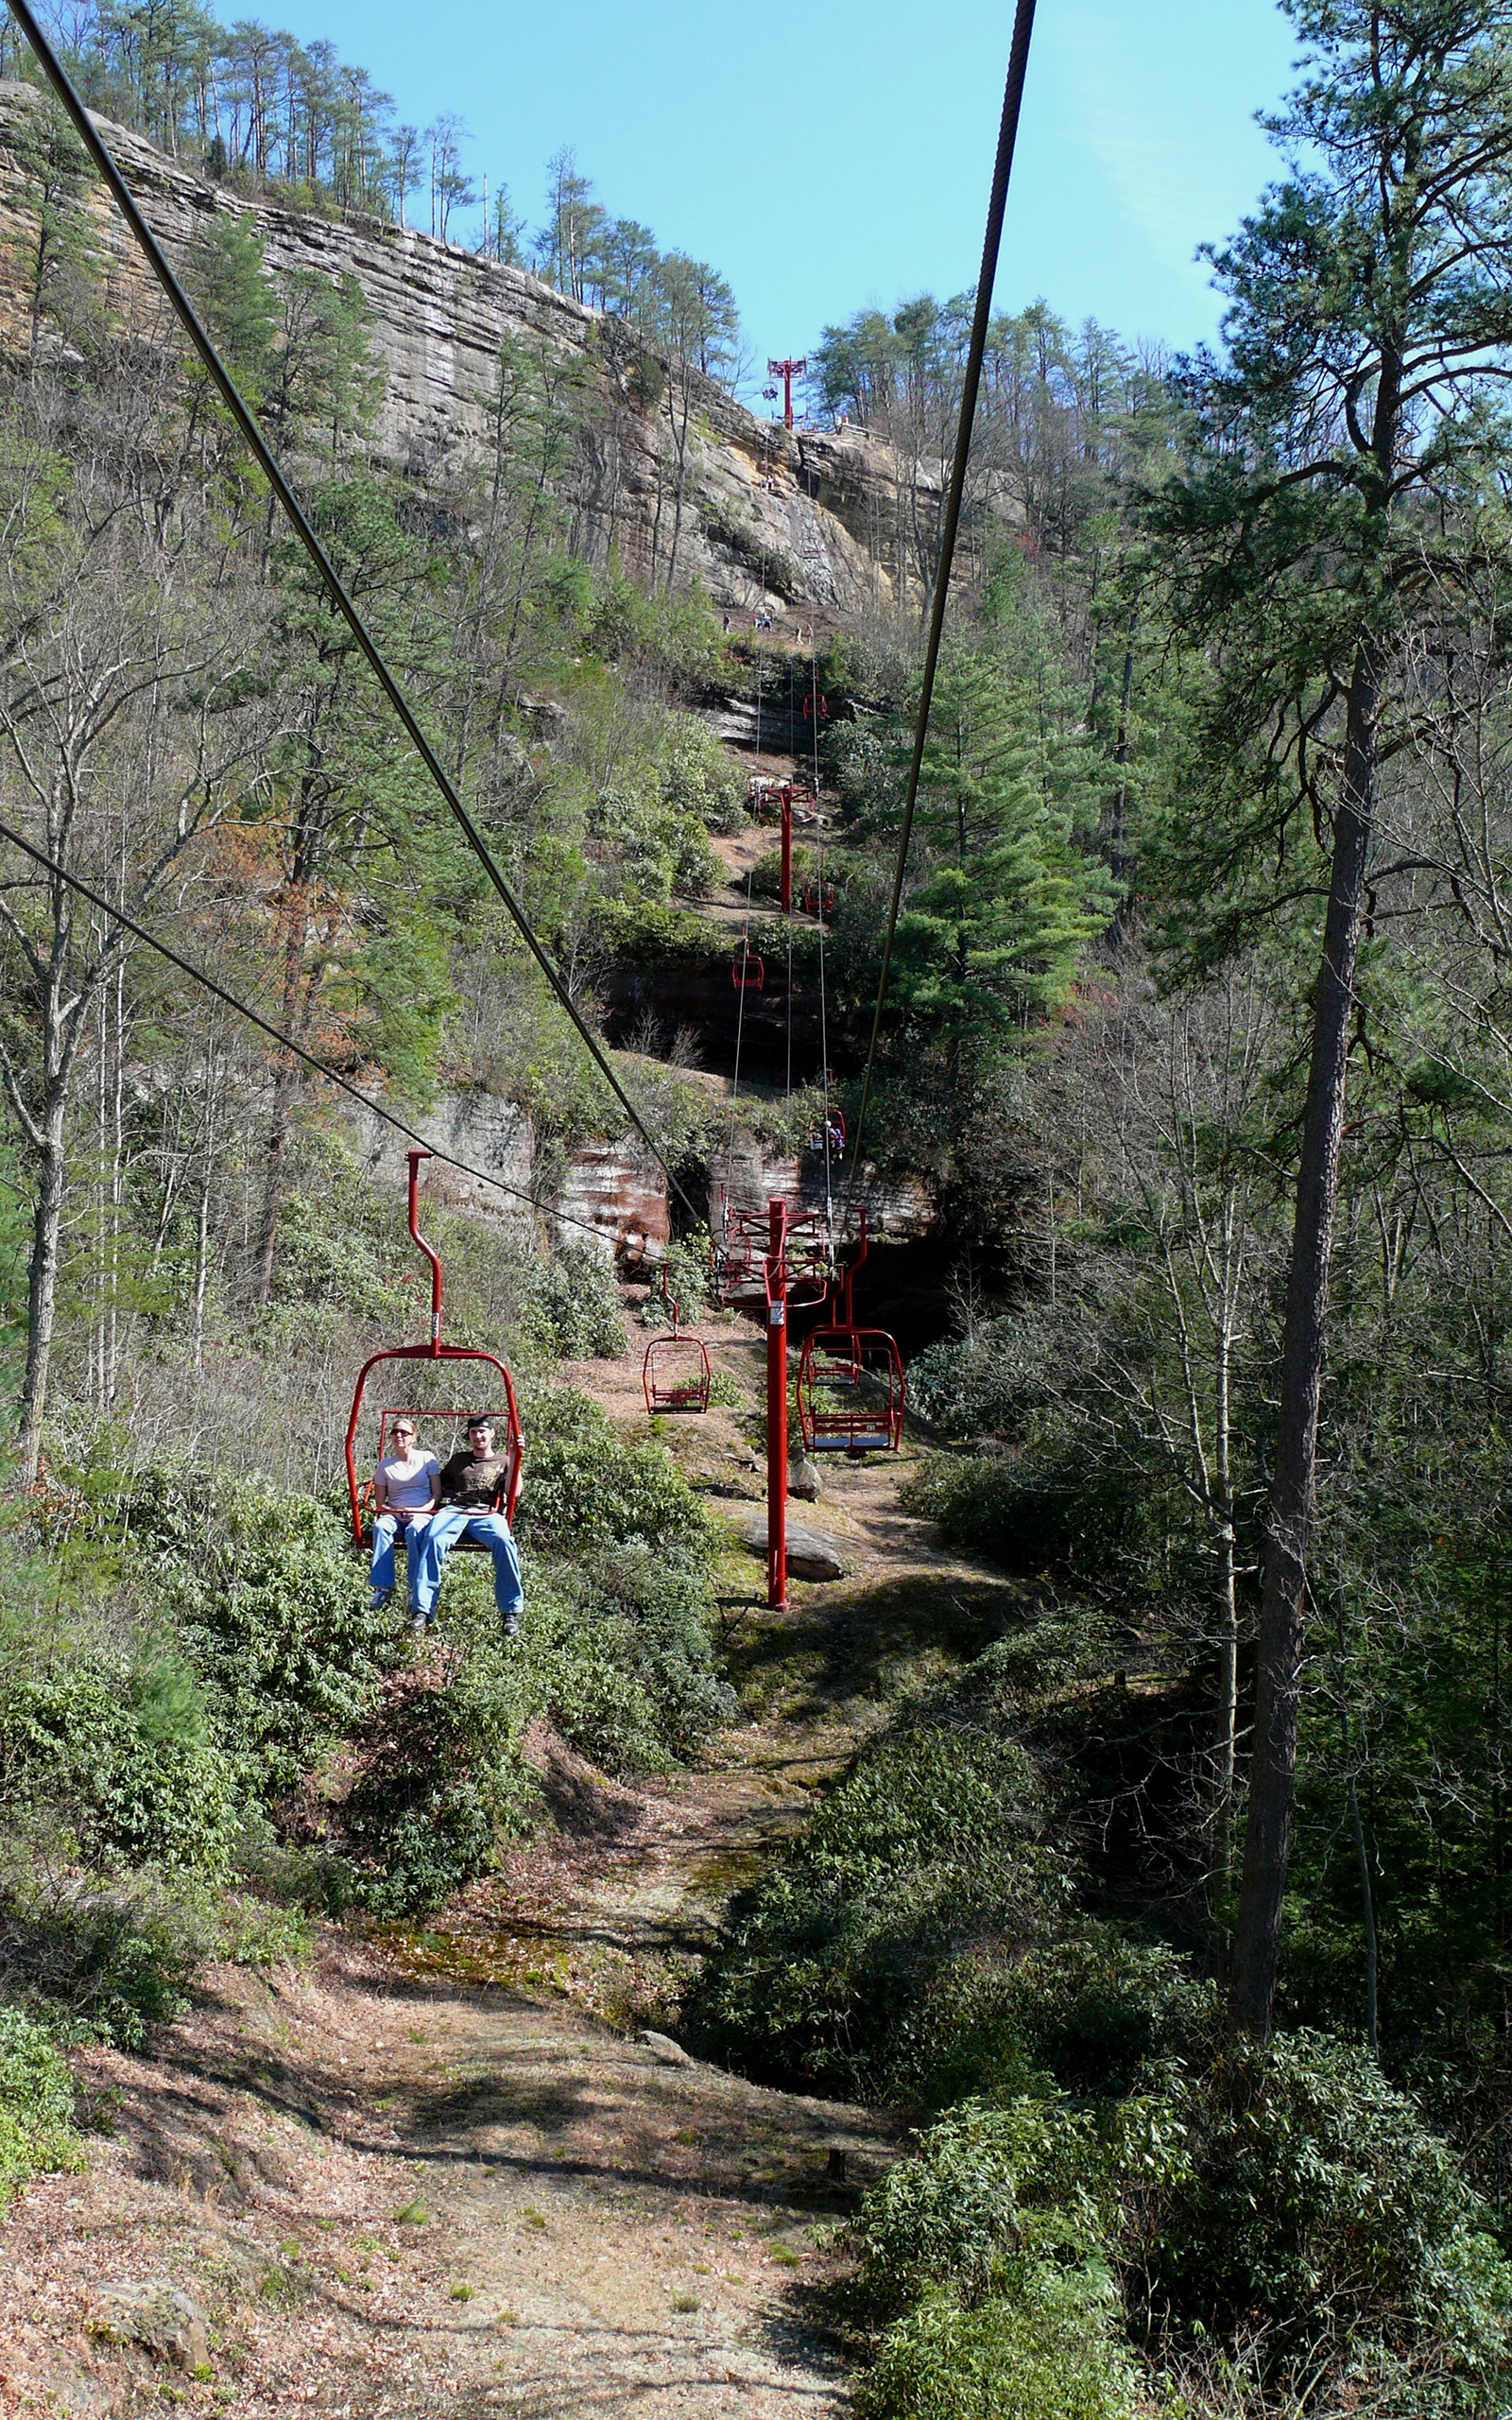 free online personals in natural bridge station Check out jellystone park natural bridge's overnight camping rates as well as pricing for children 2 and under are free natural bridge station, va.